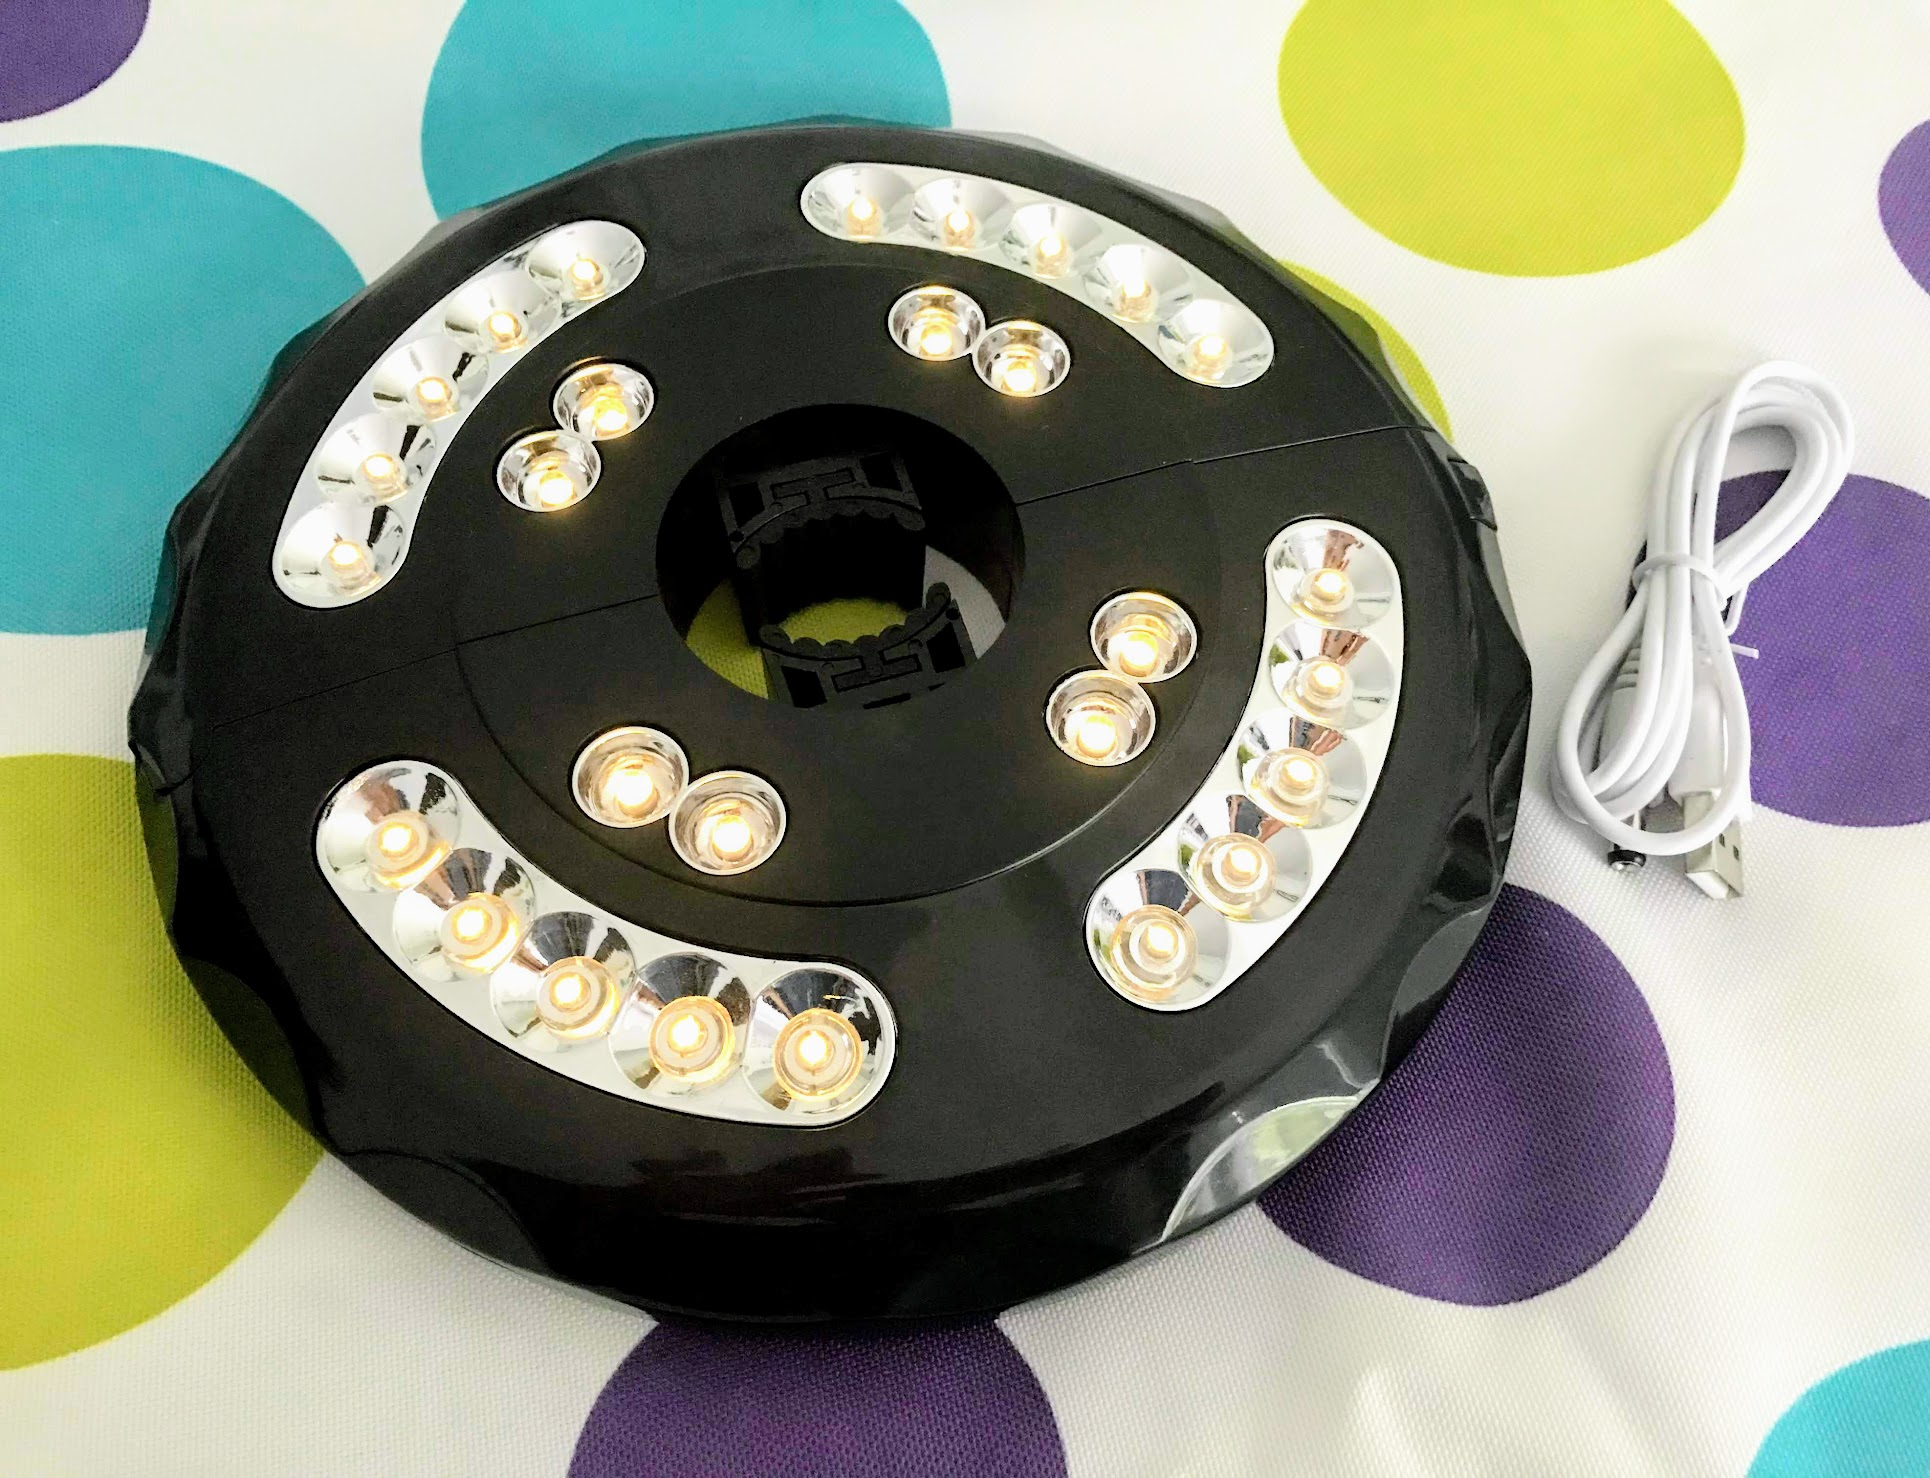 pool party lights for your outdoor umbrella